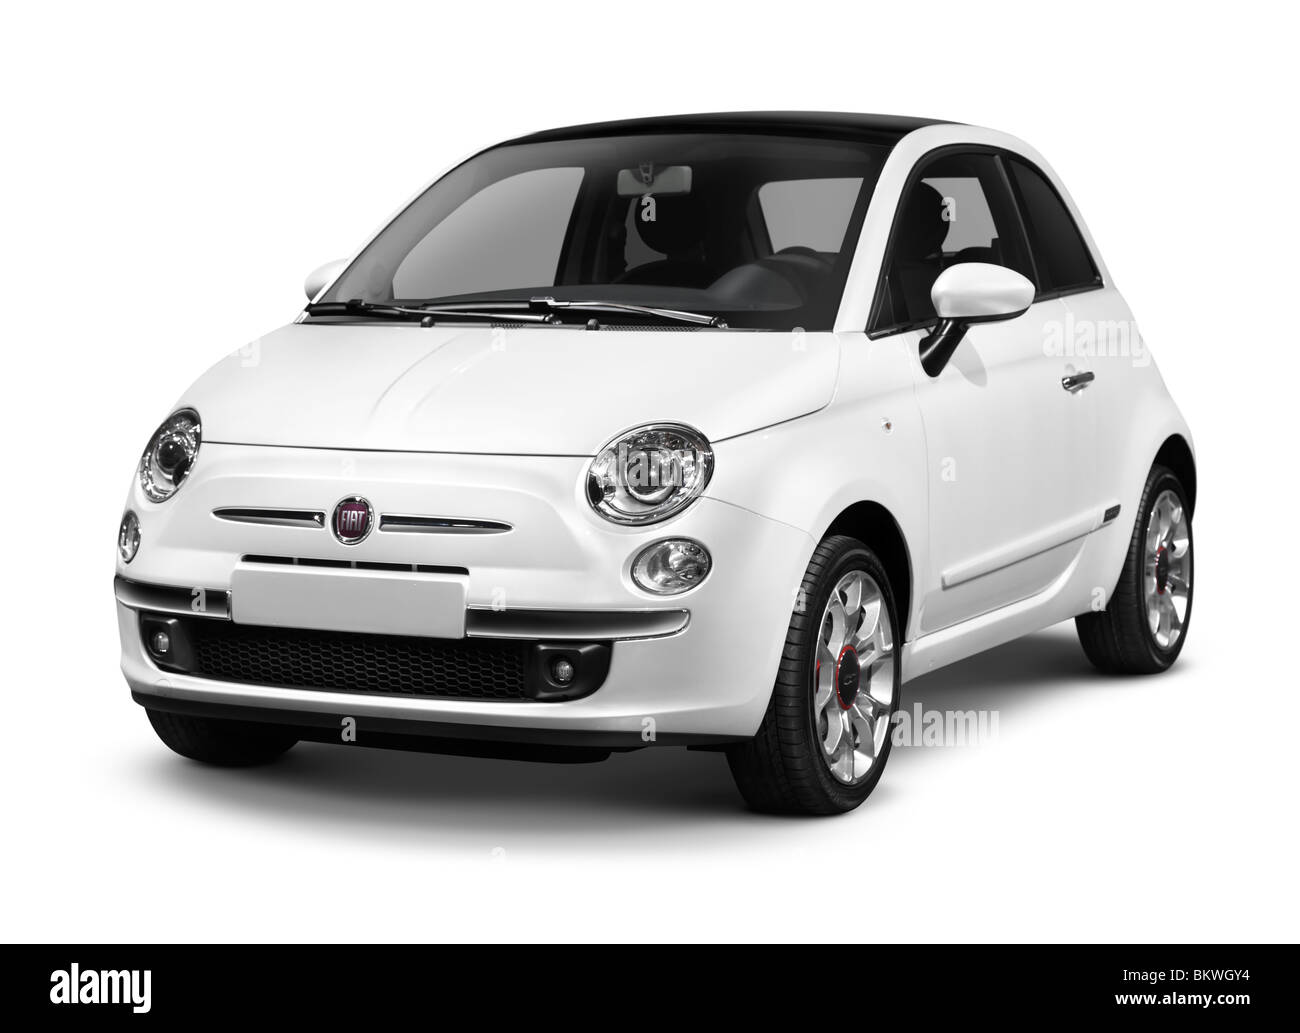 2010 Fiat Nuova 500 small city car isolated on white background with clipping path Stock Photo